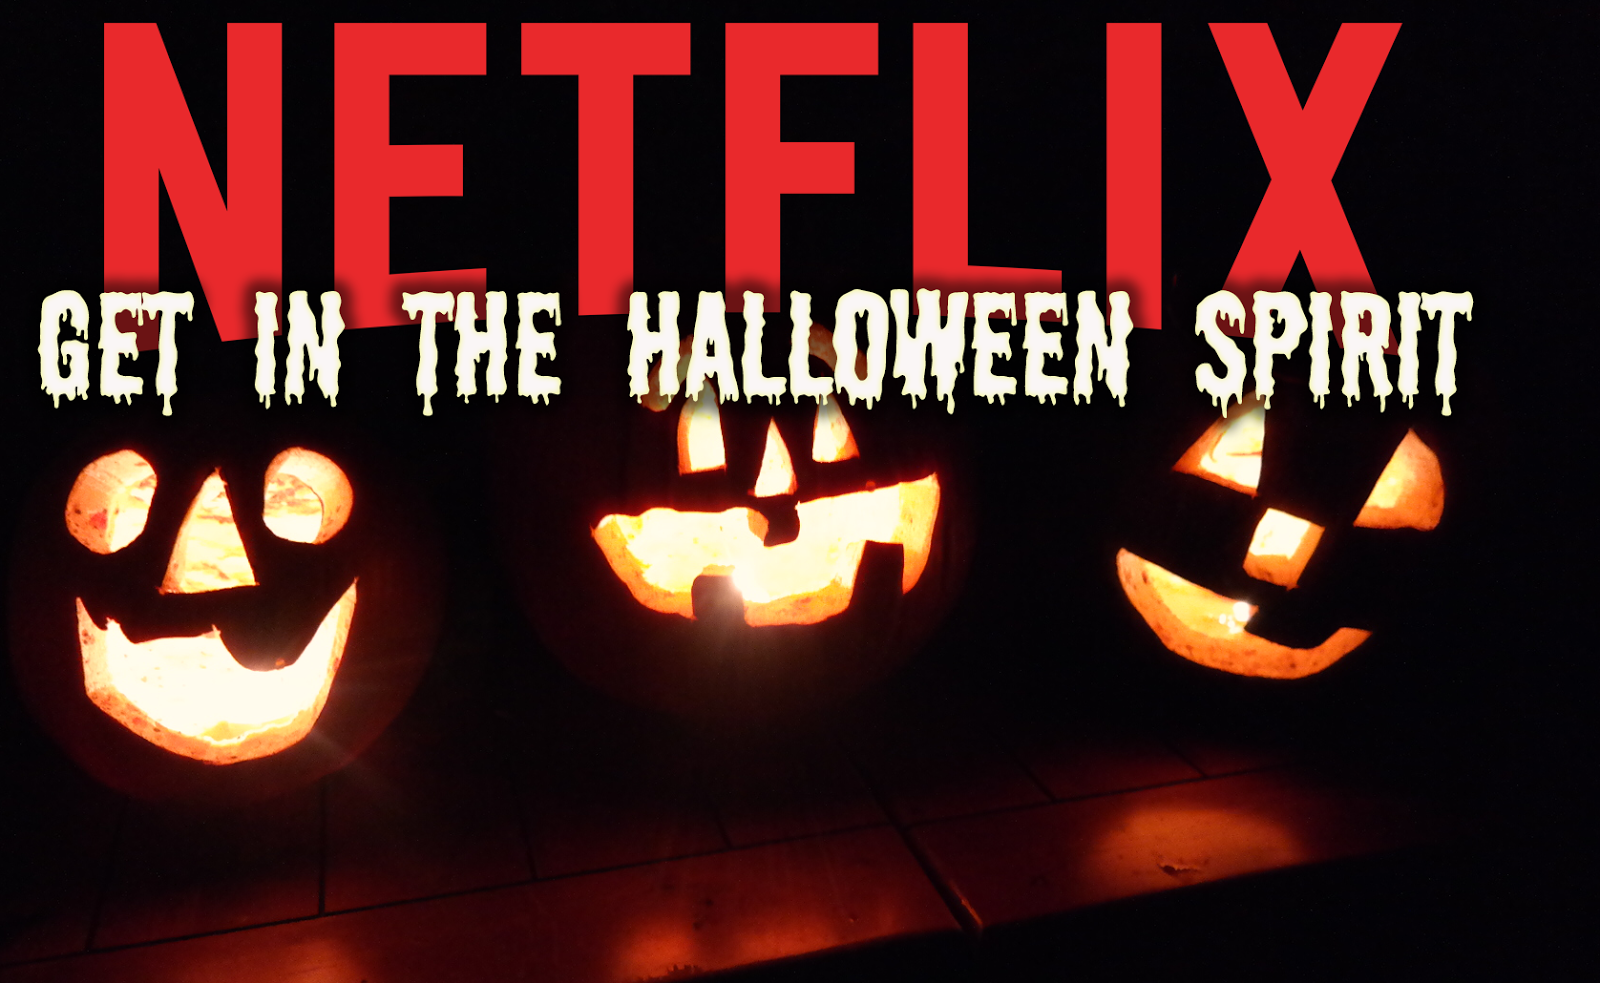 get in the halloween spirit with netflix